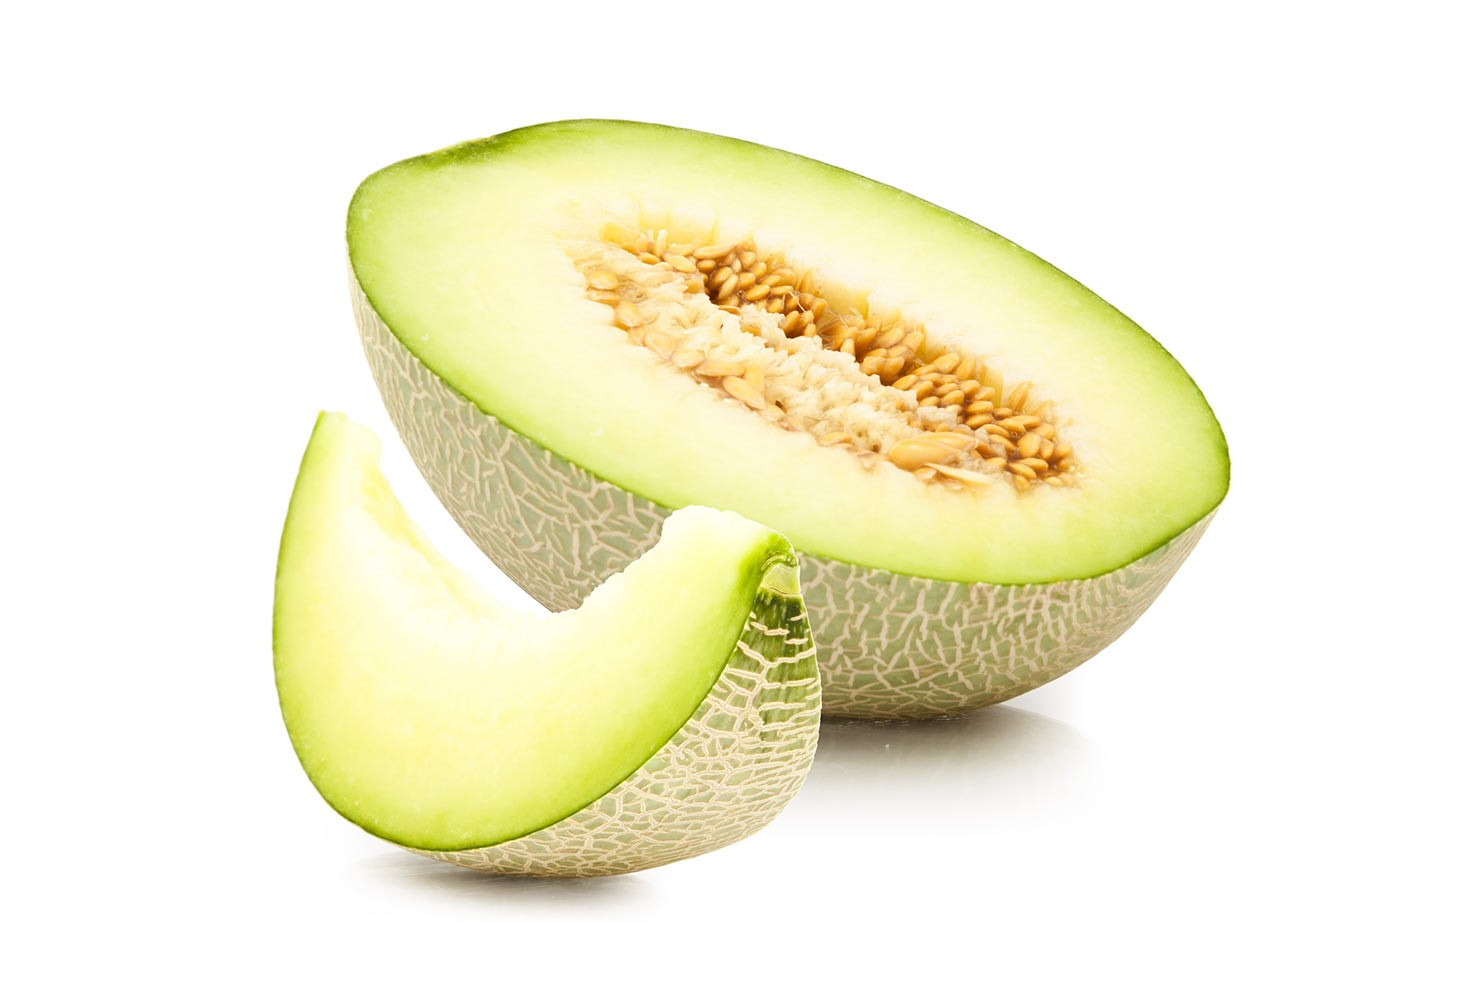 Half of a melon and one slice on a white background | Hurry The Food Up